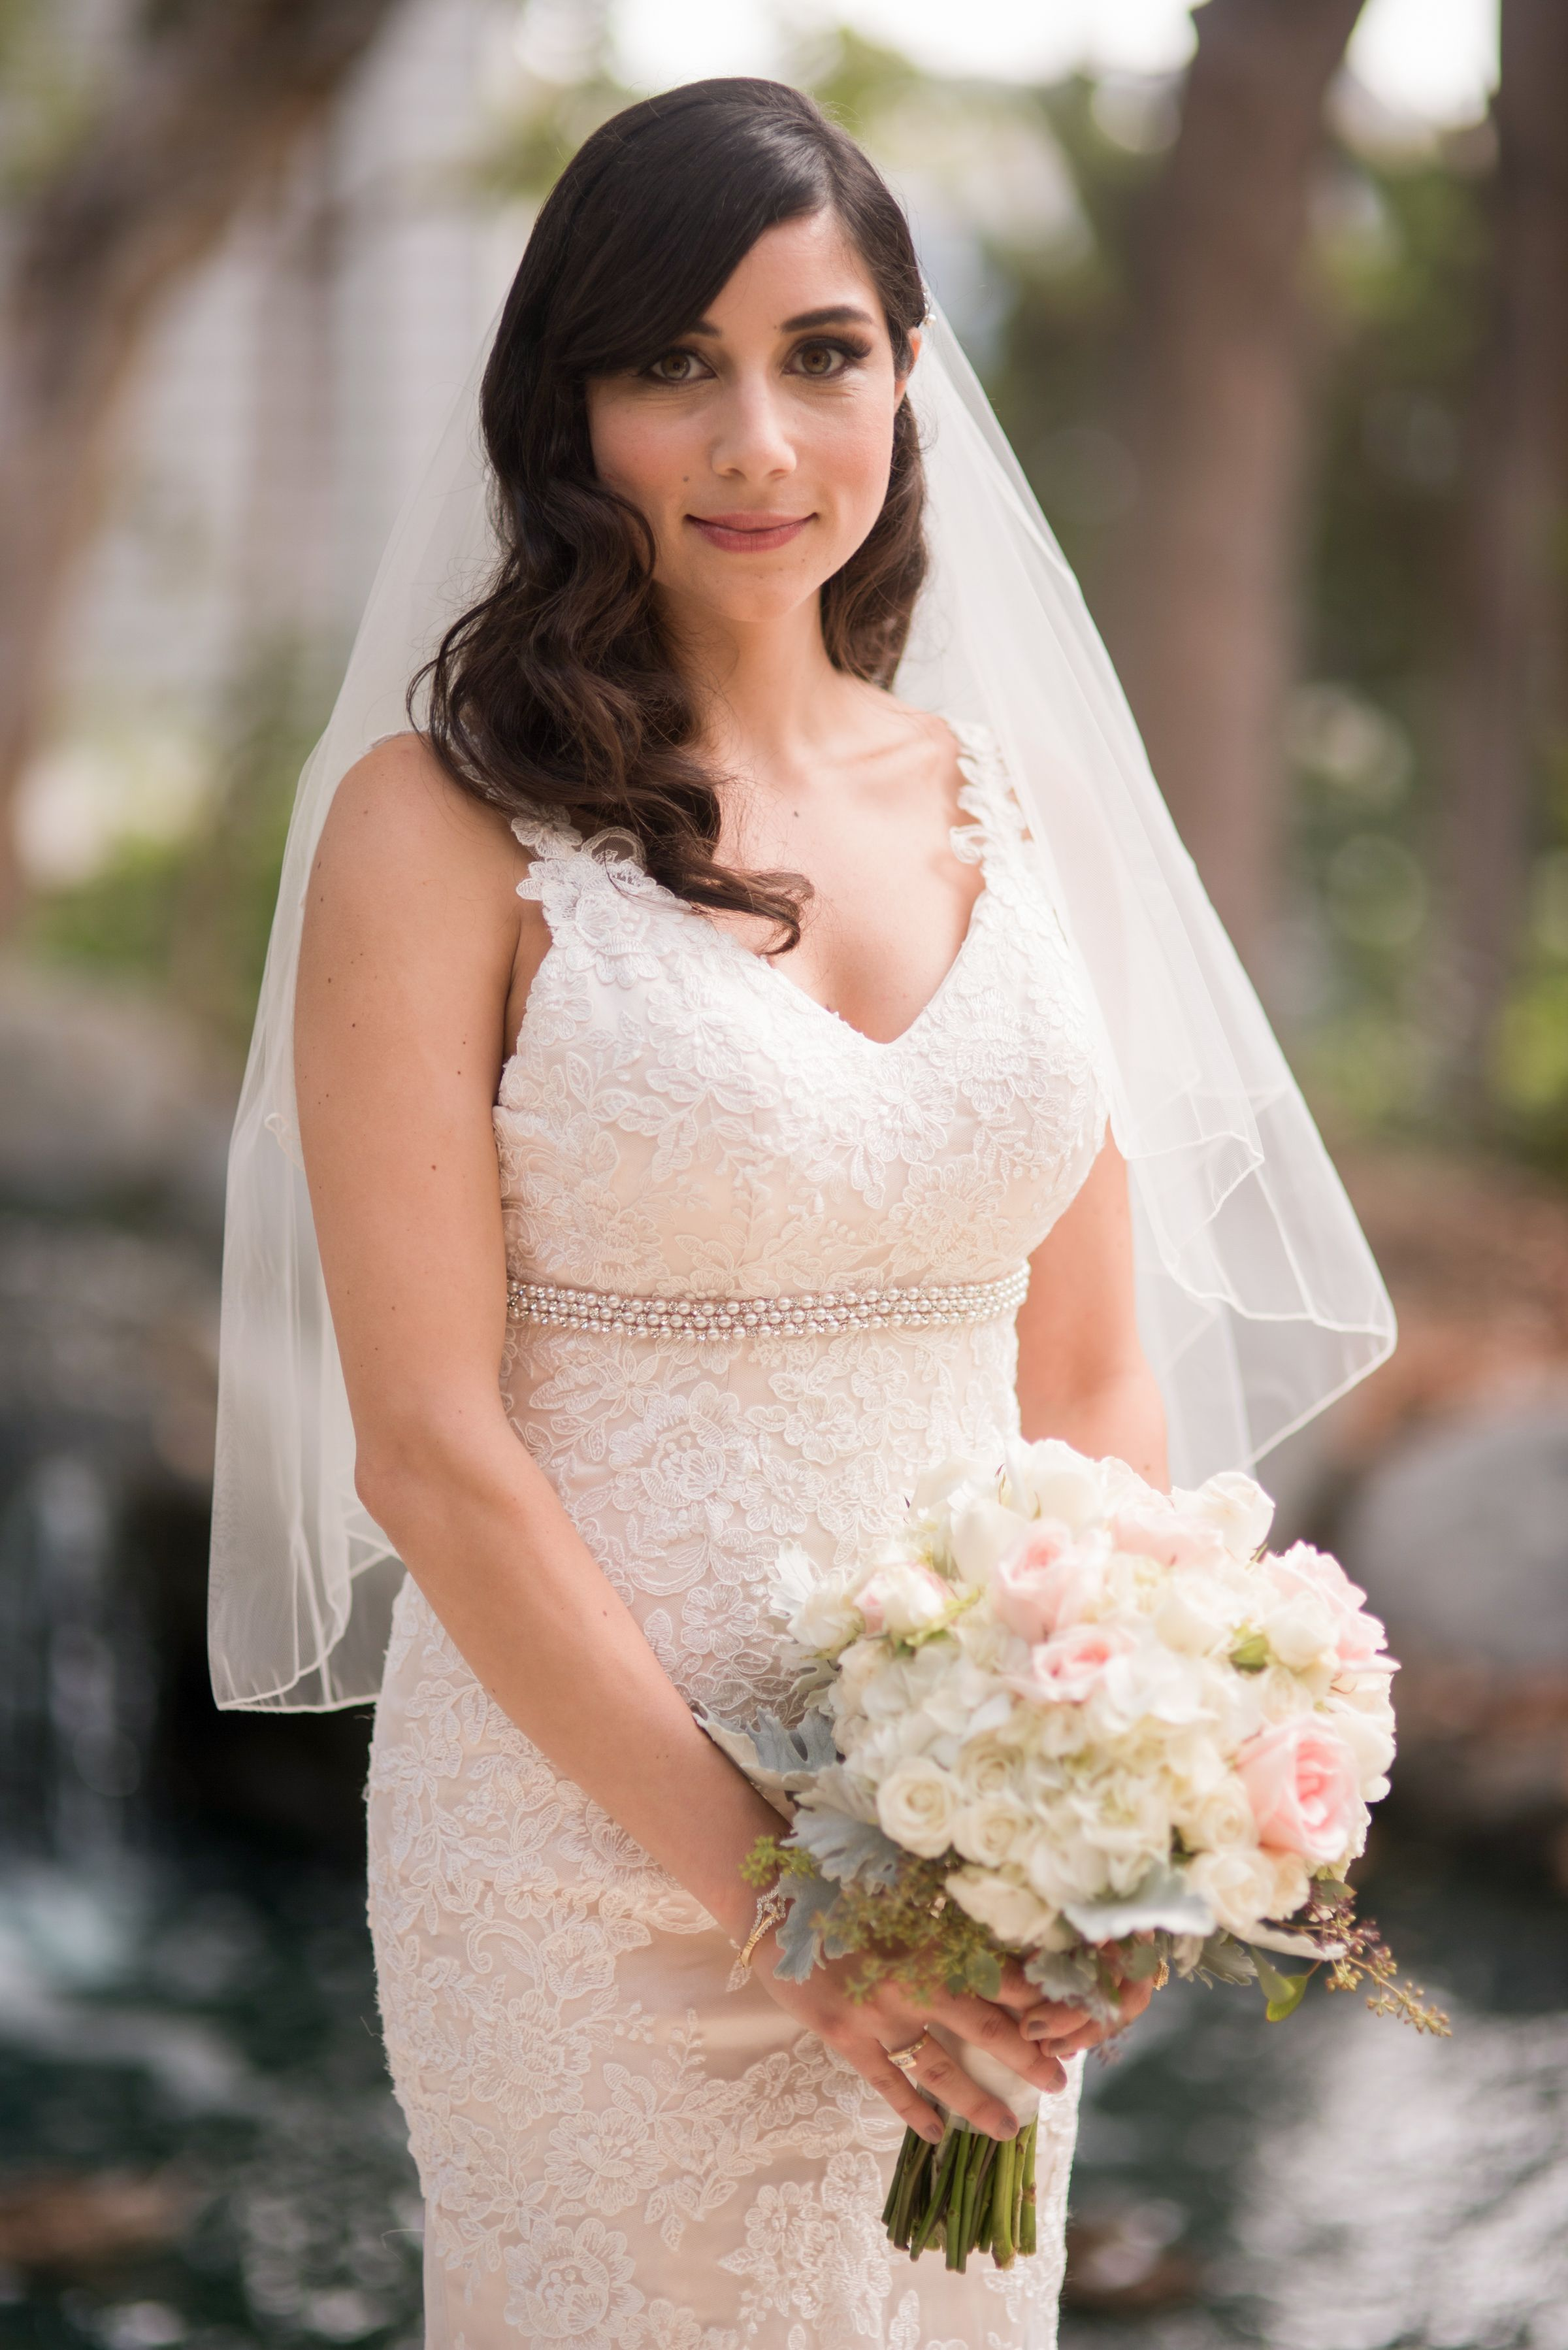 LOS ANGELES WEDDING AND BRIDAL HAIR AND MAKEUP ARTIST